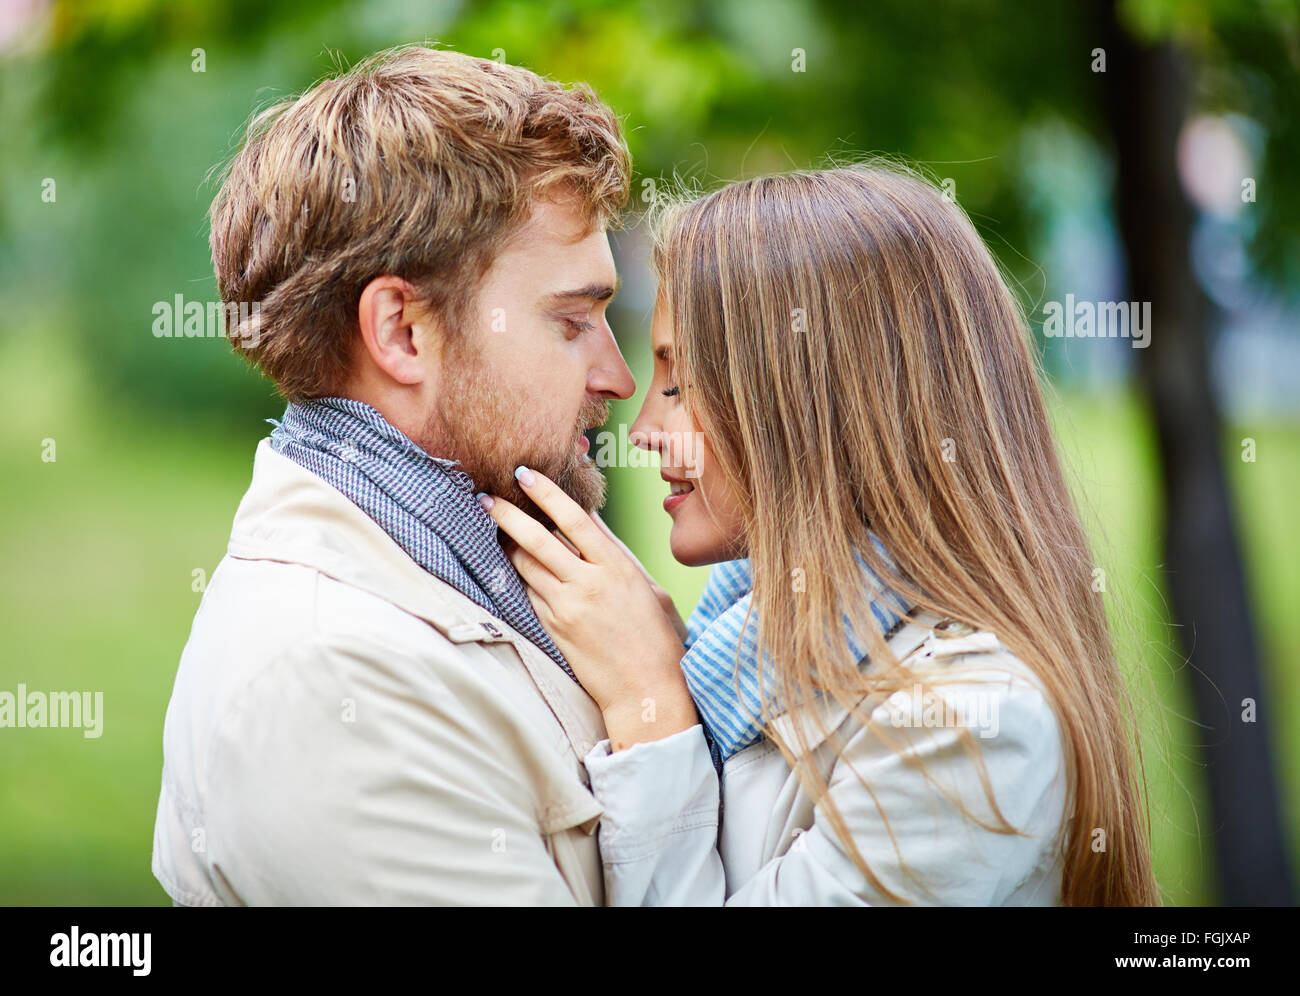 Happy young couple flirting in park - Stock Image